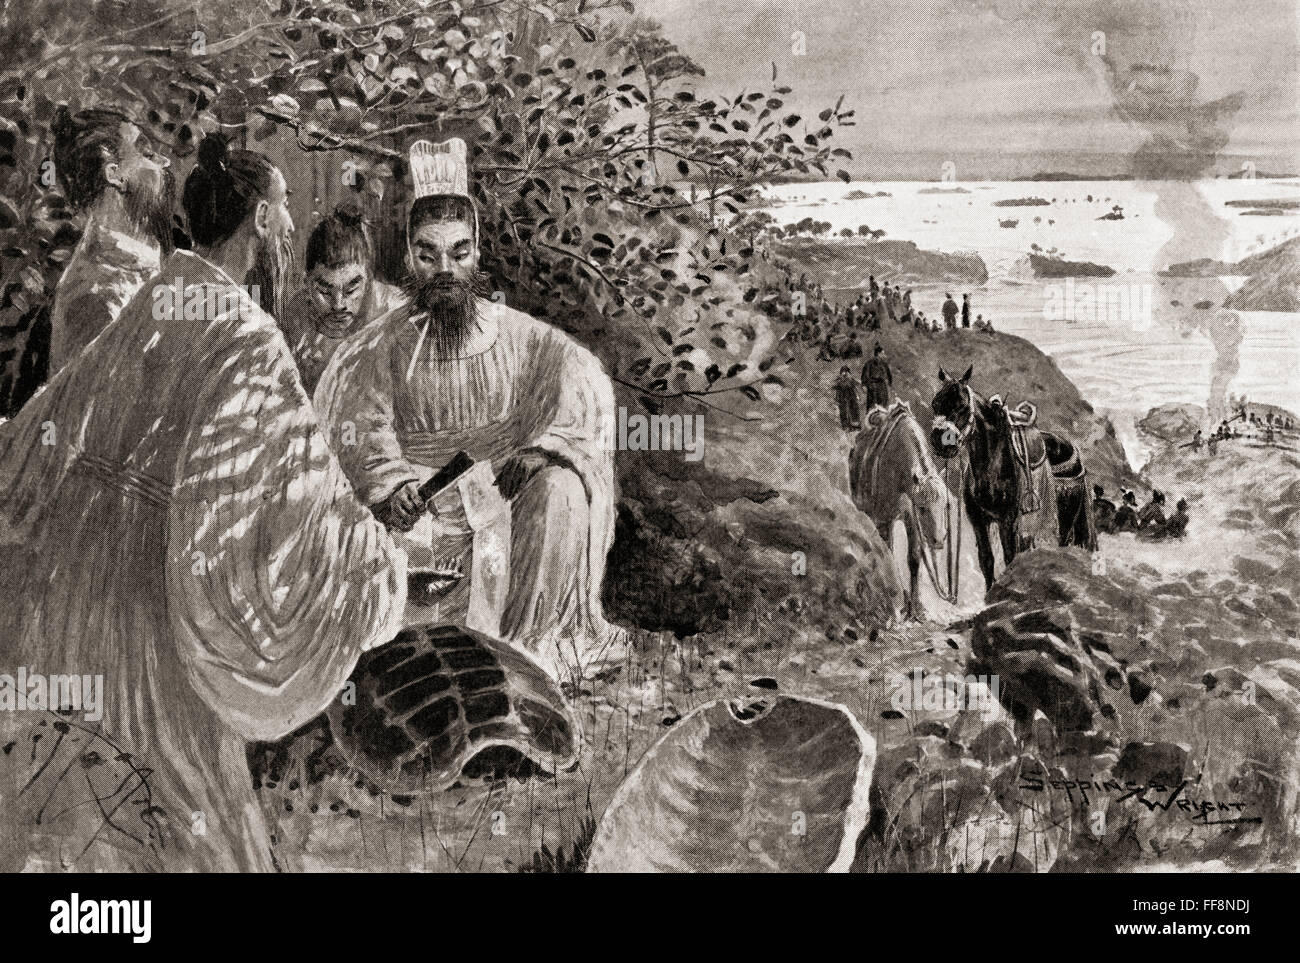 Yu the Great, c. 2200 – 2100 BC.  Legendary ruler in ancient China famed for his introduction of flood control, - Stock Image